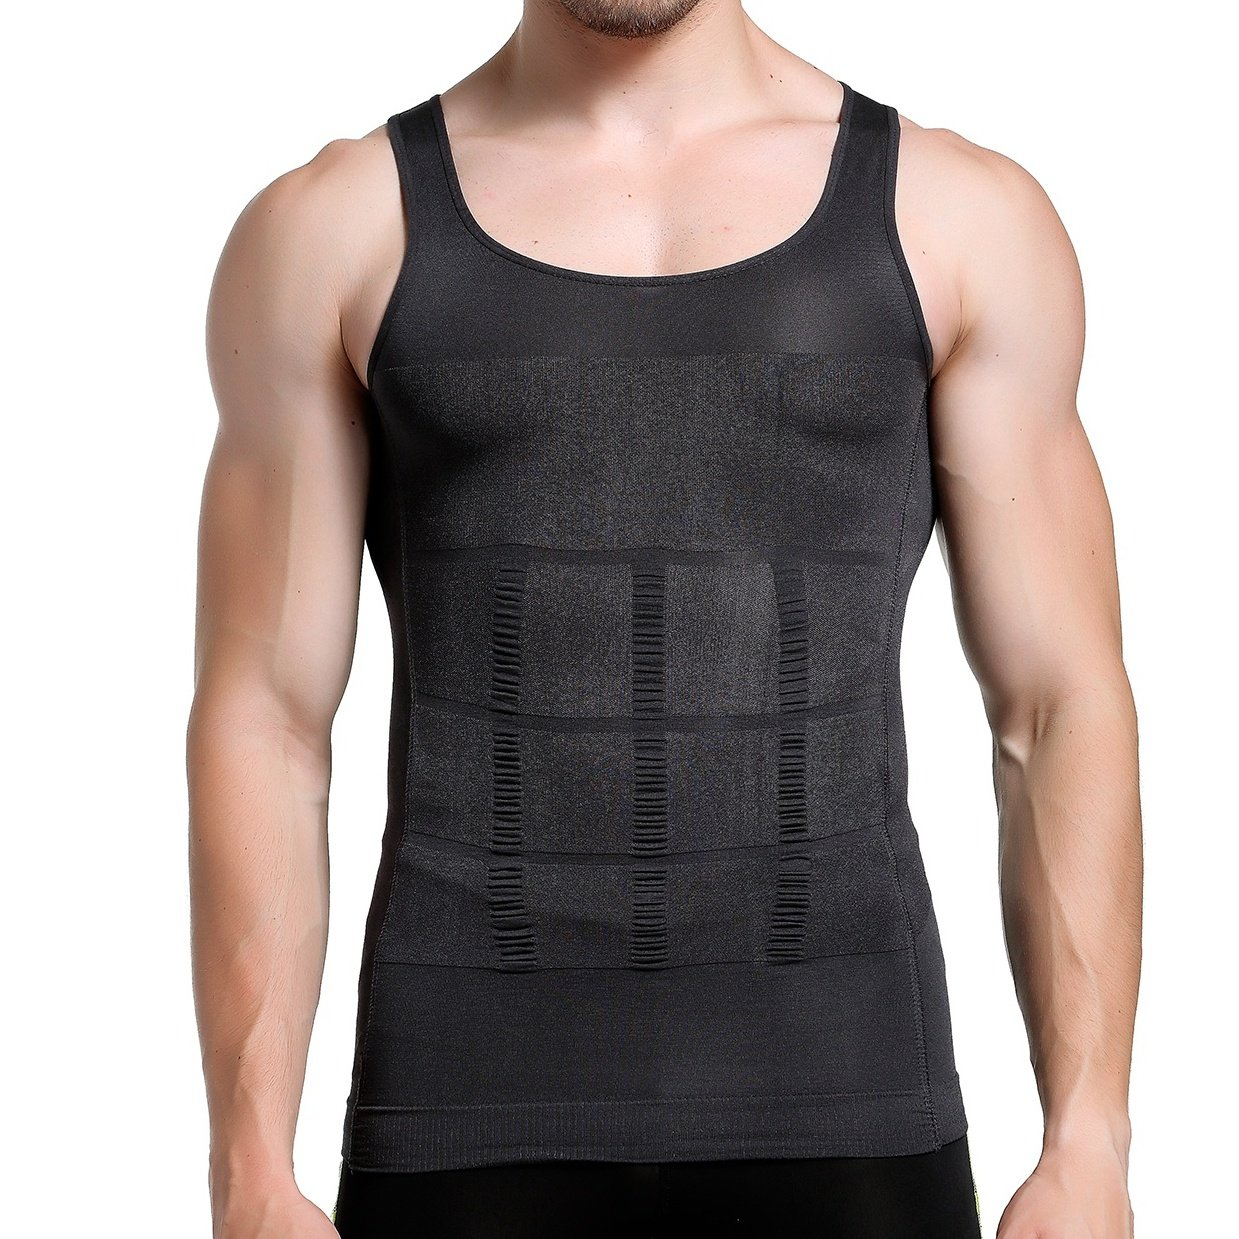 GKVK Mens Slimming Body Shaper Vest Shirt Abs Abdomen Slim GKVKYANG gkvk-107